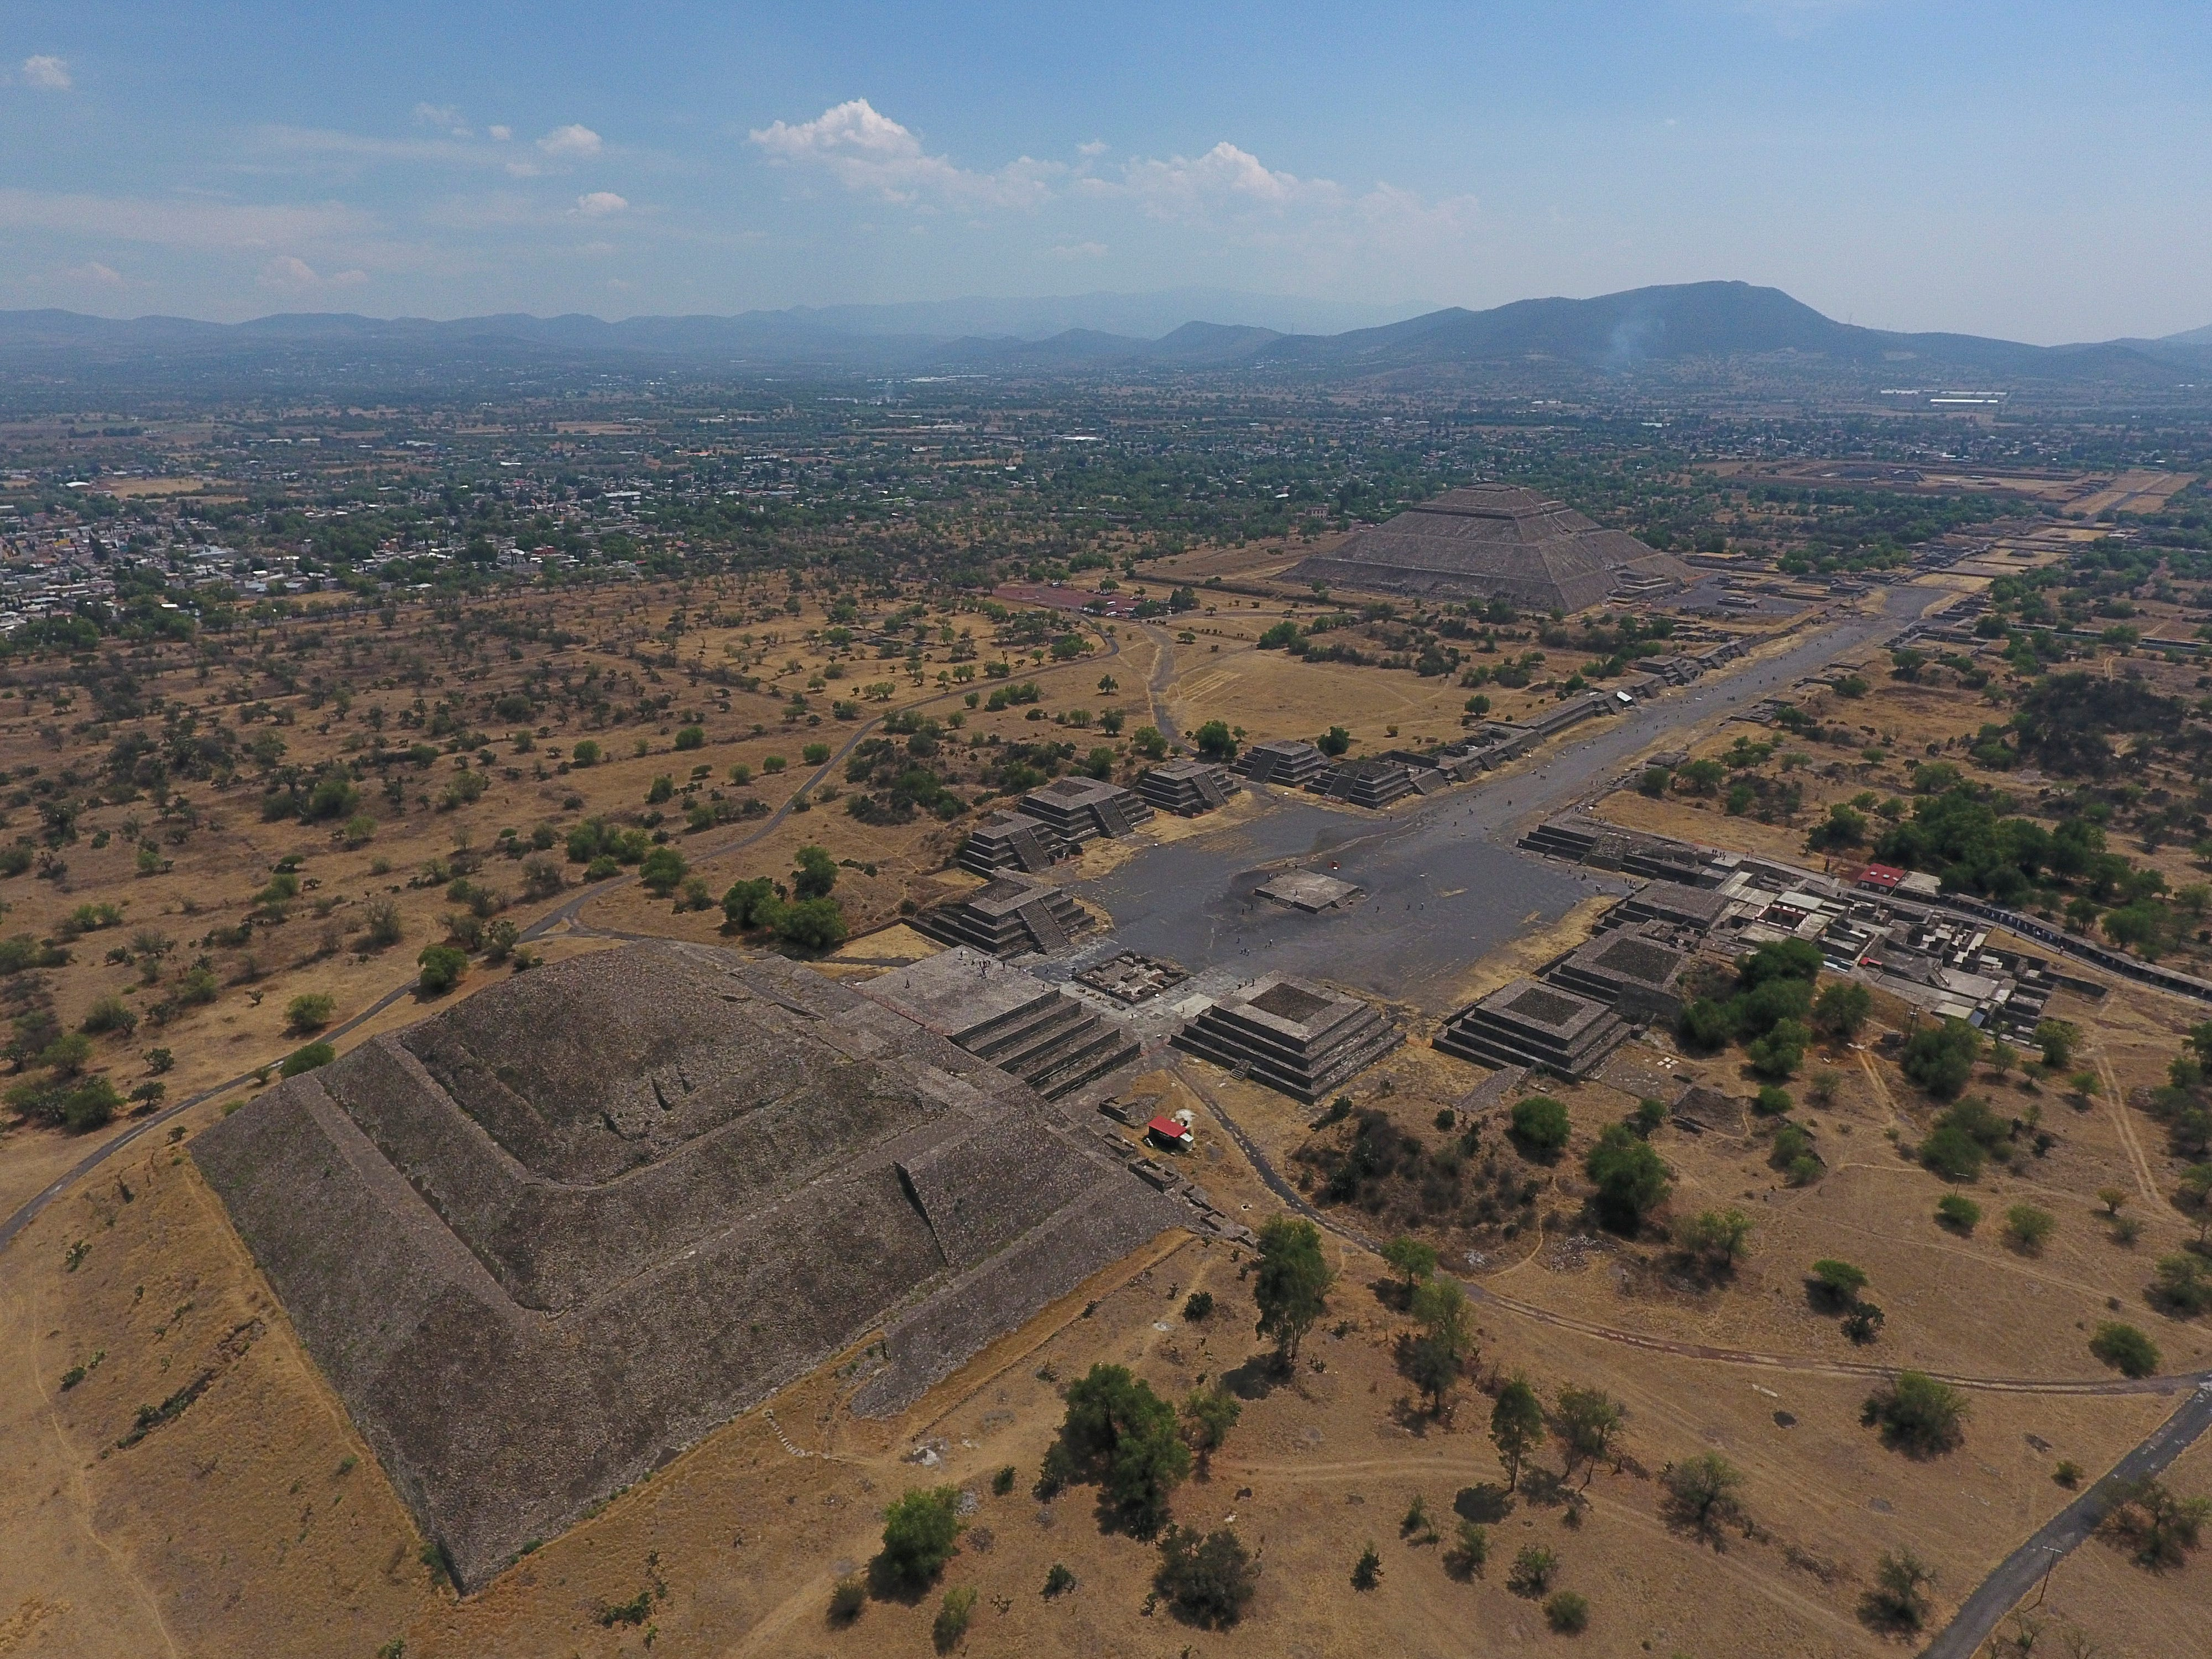 Mexico: Builders bulldozing outskirts of Teotihuacan ruins 2